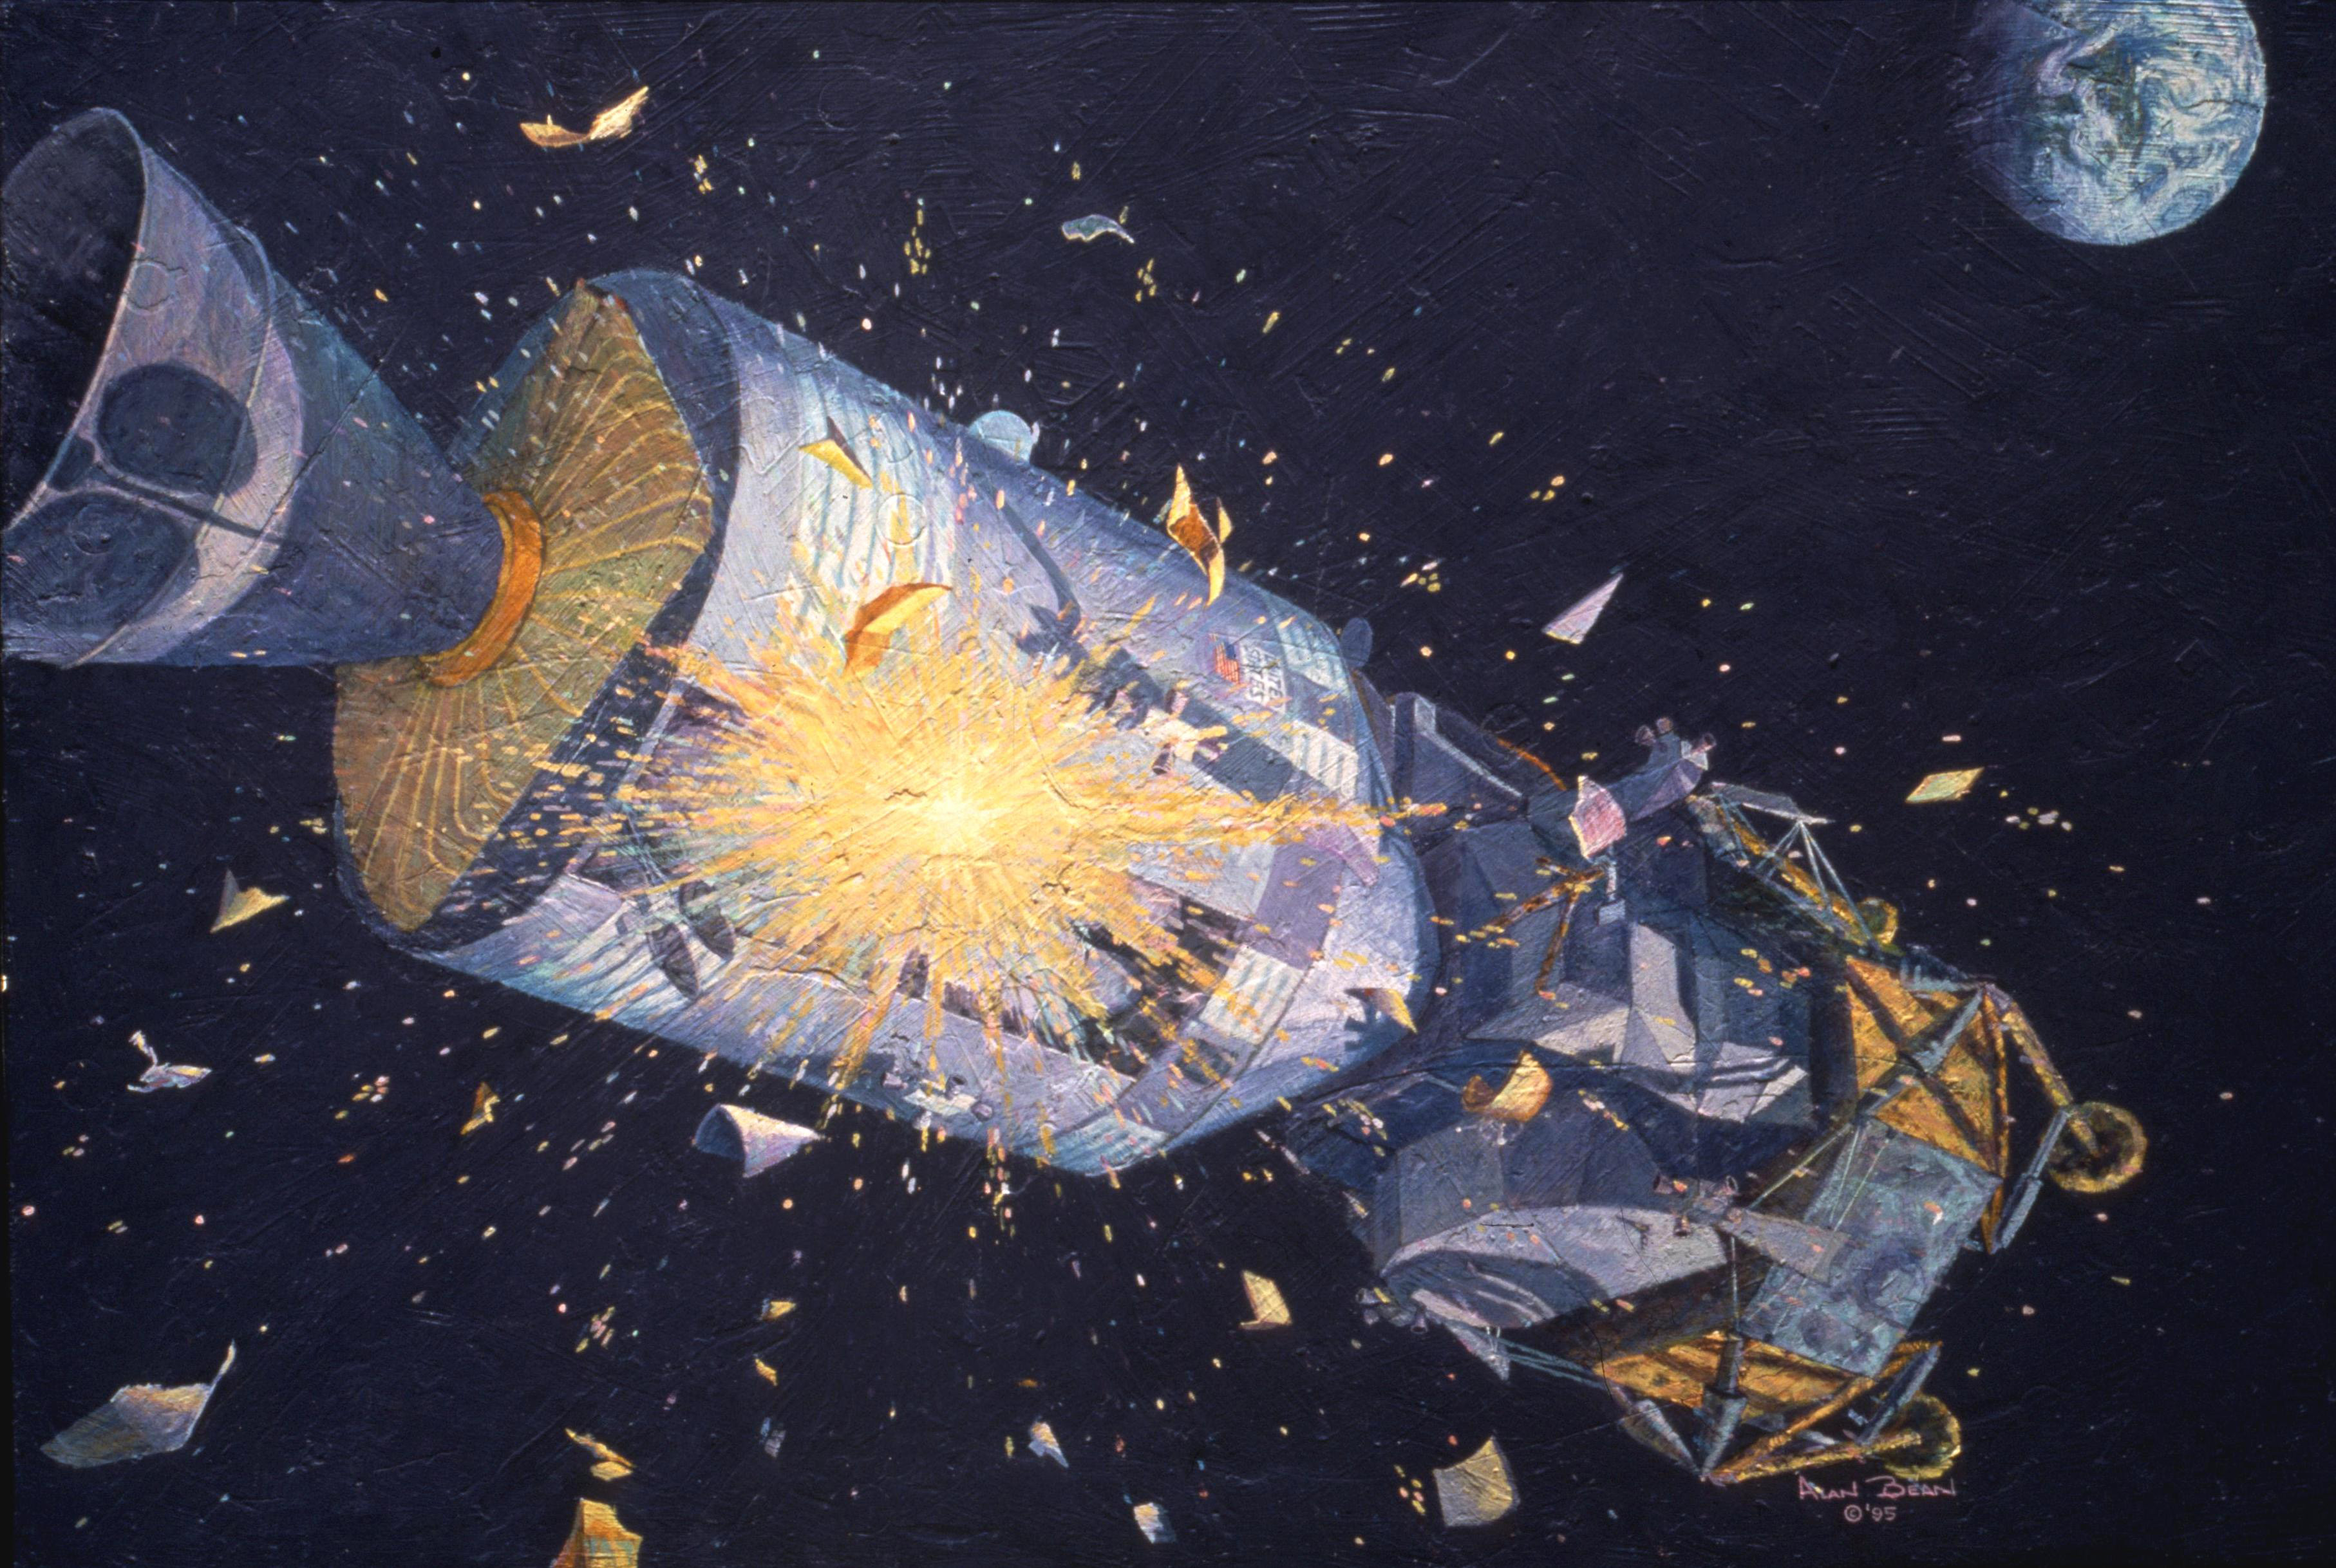 what caused the explosion on apollo 13